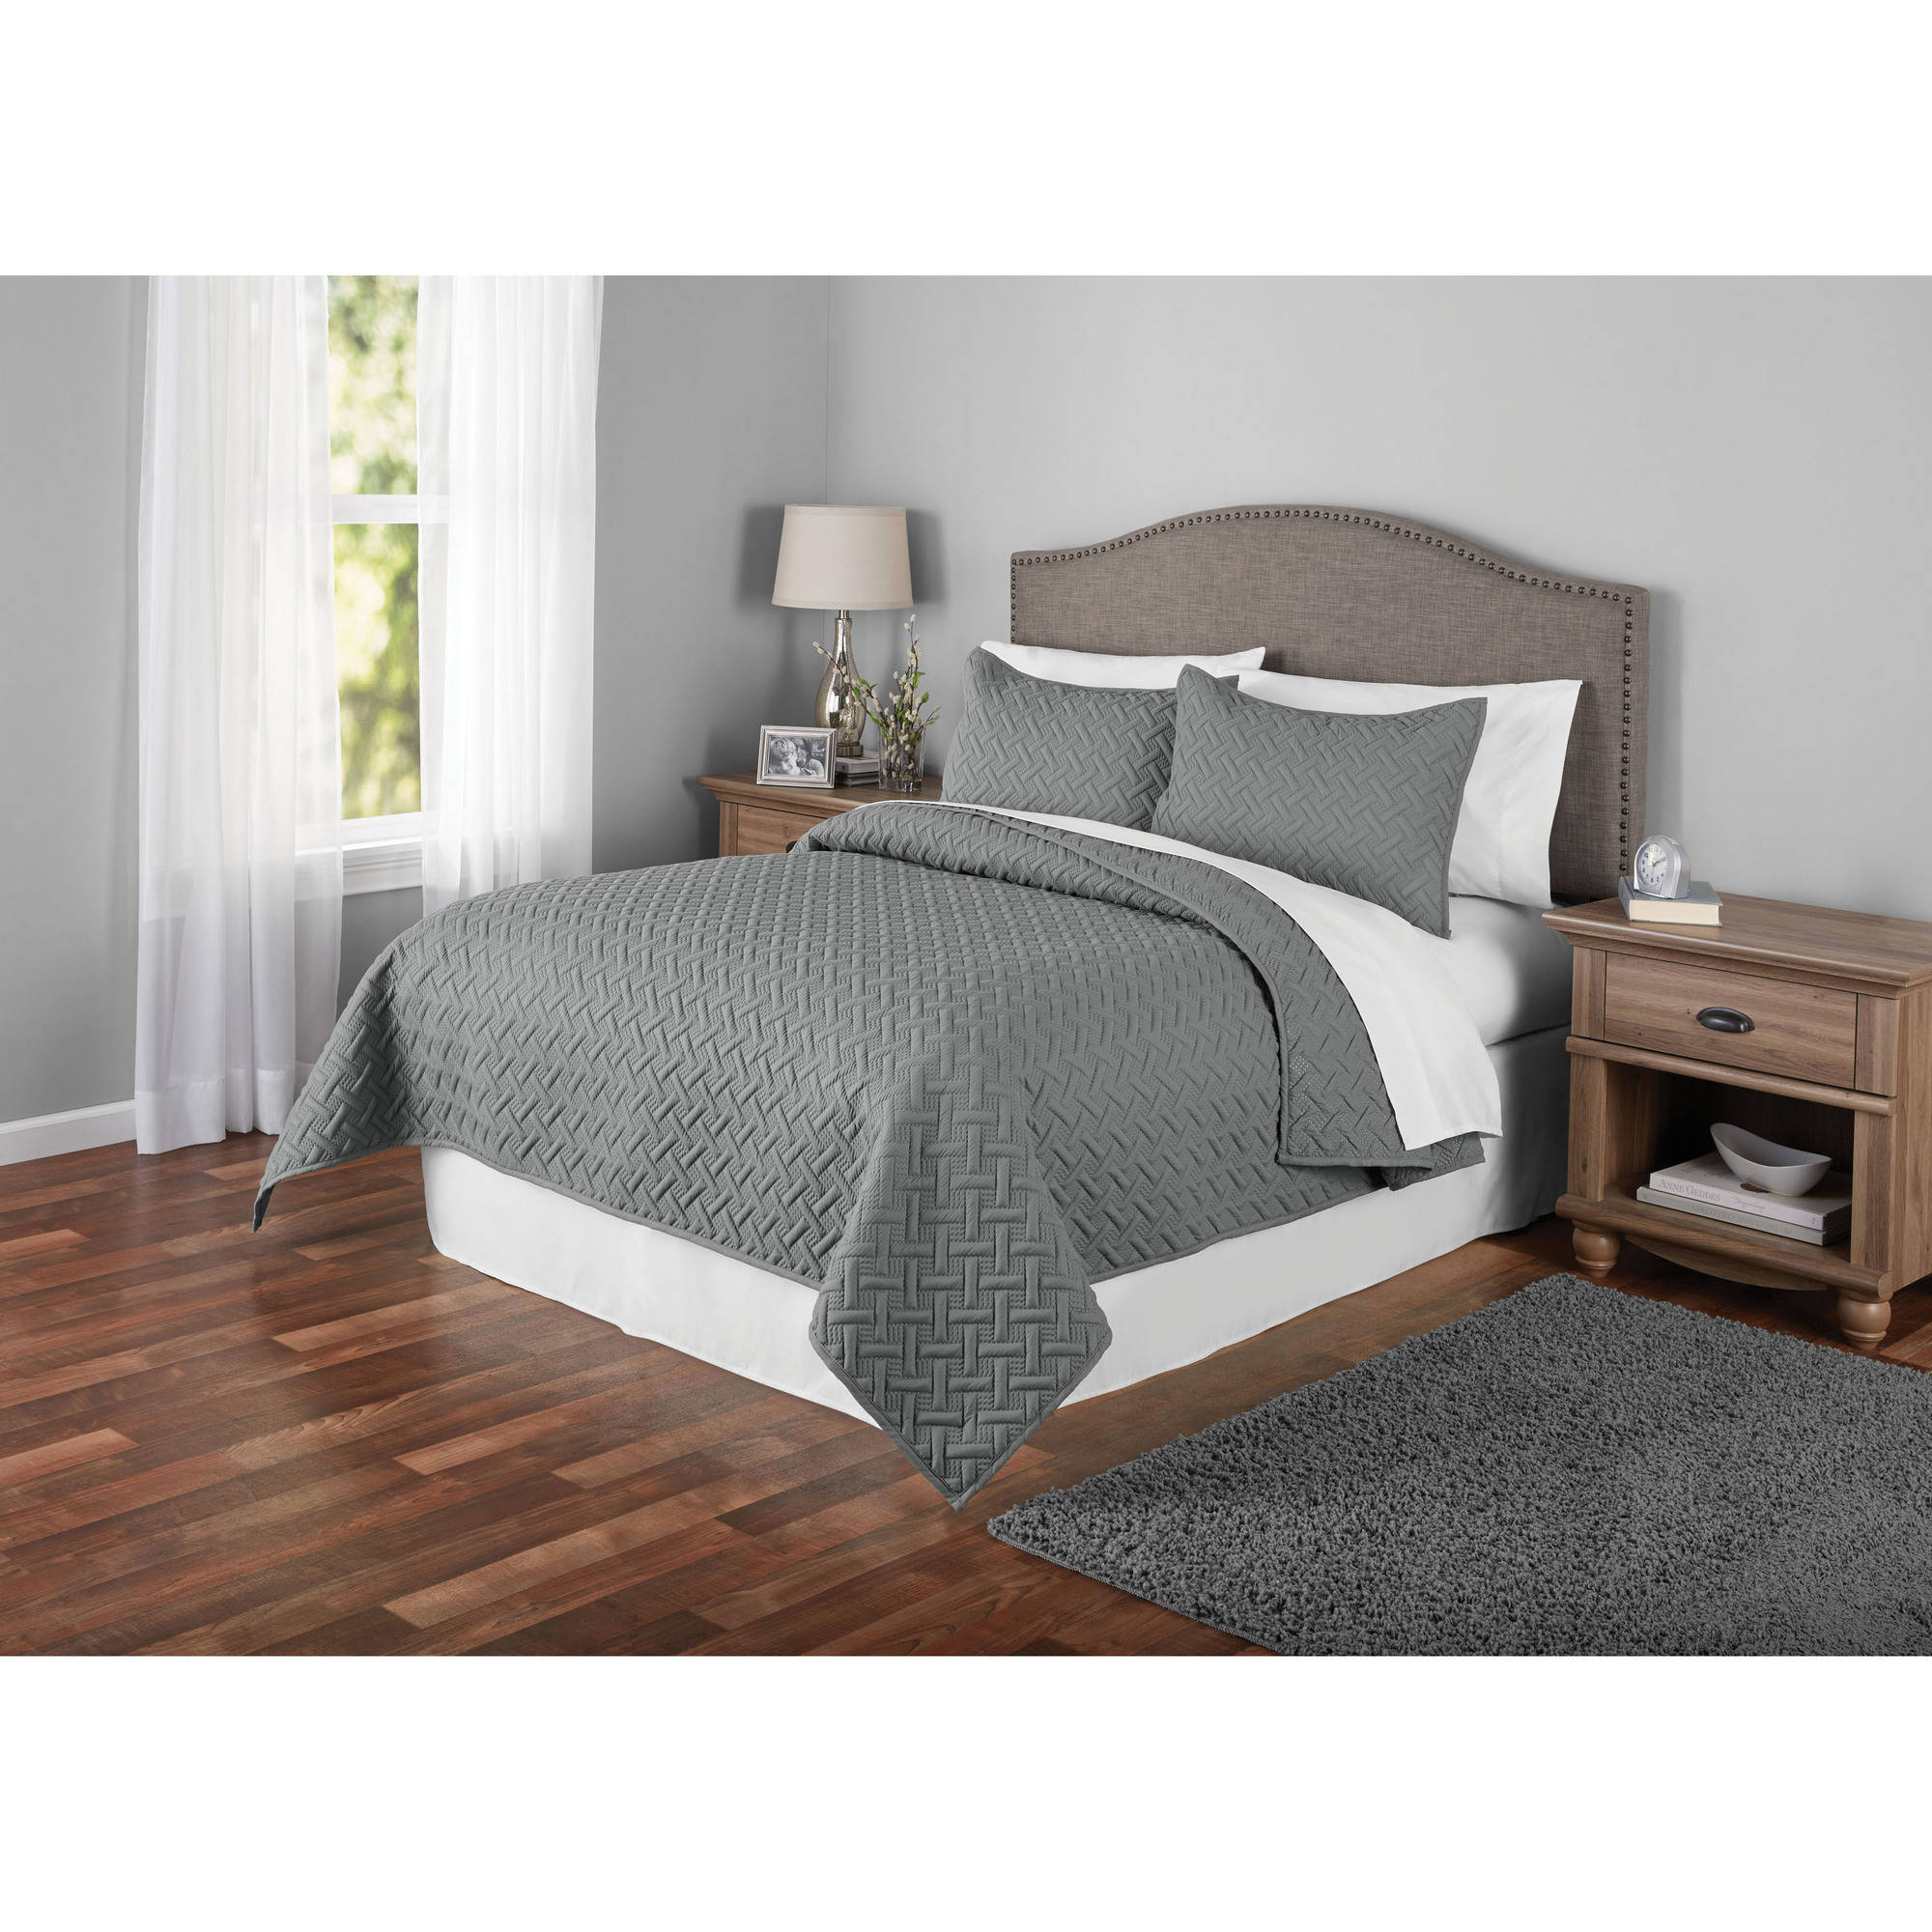 Mainstays Emma Solid Basket-Weave Quilt and Shams, Multiple Colors and Sizes Available by VCNY Home